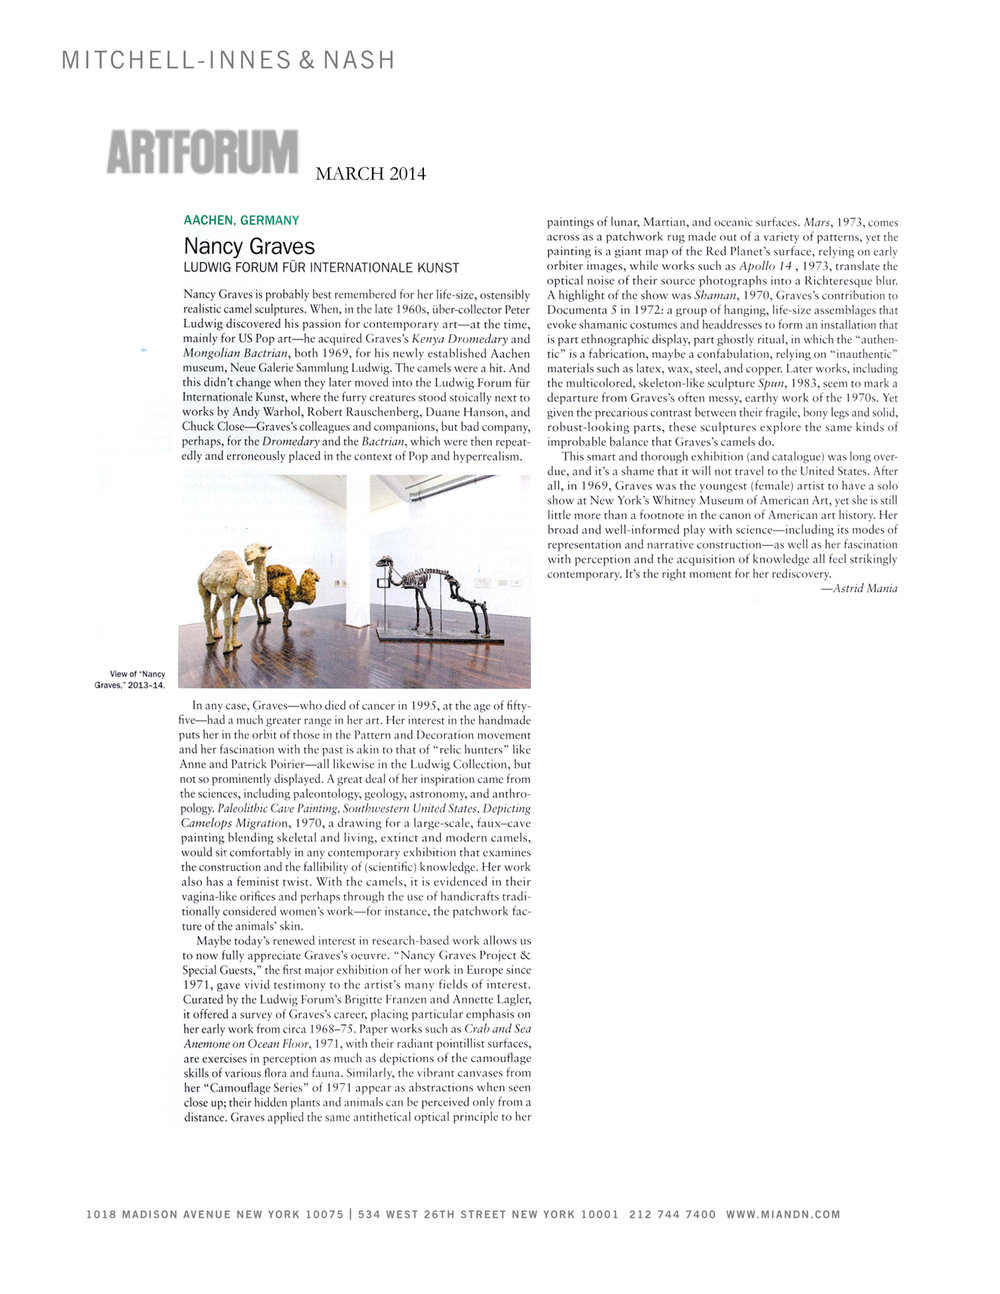 Nancy Graves at the Ludwig Forum, Aachen,  exhibition review by Astrid Mania, Artforum, March 2014